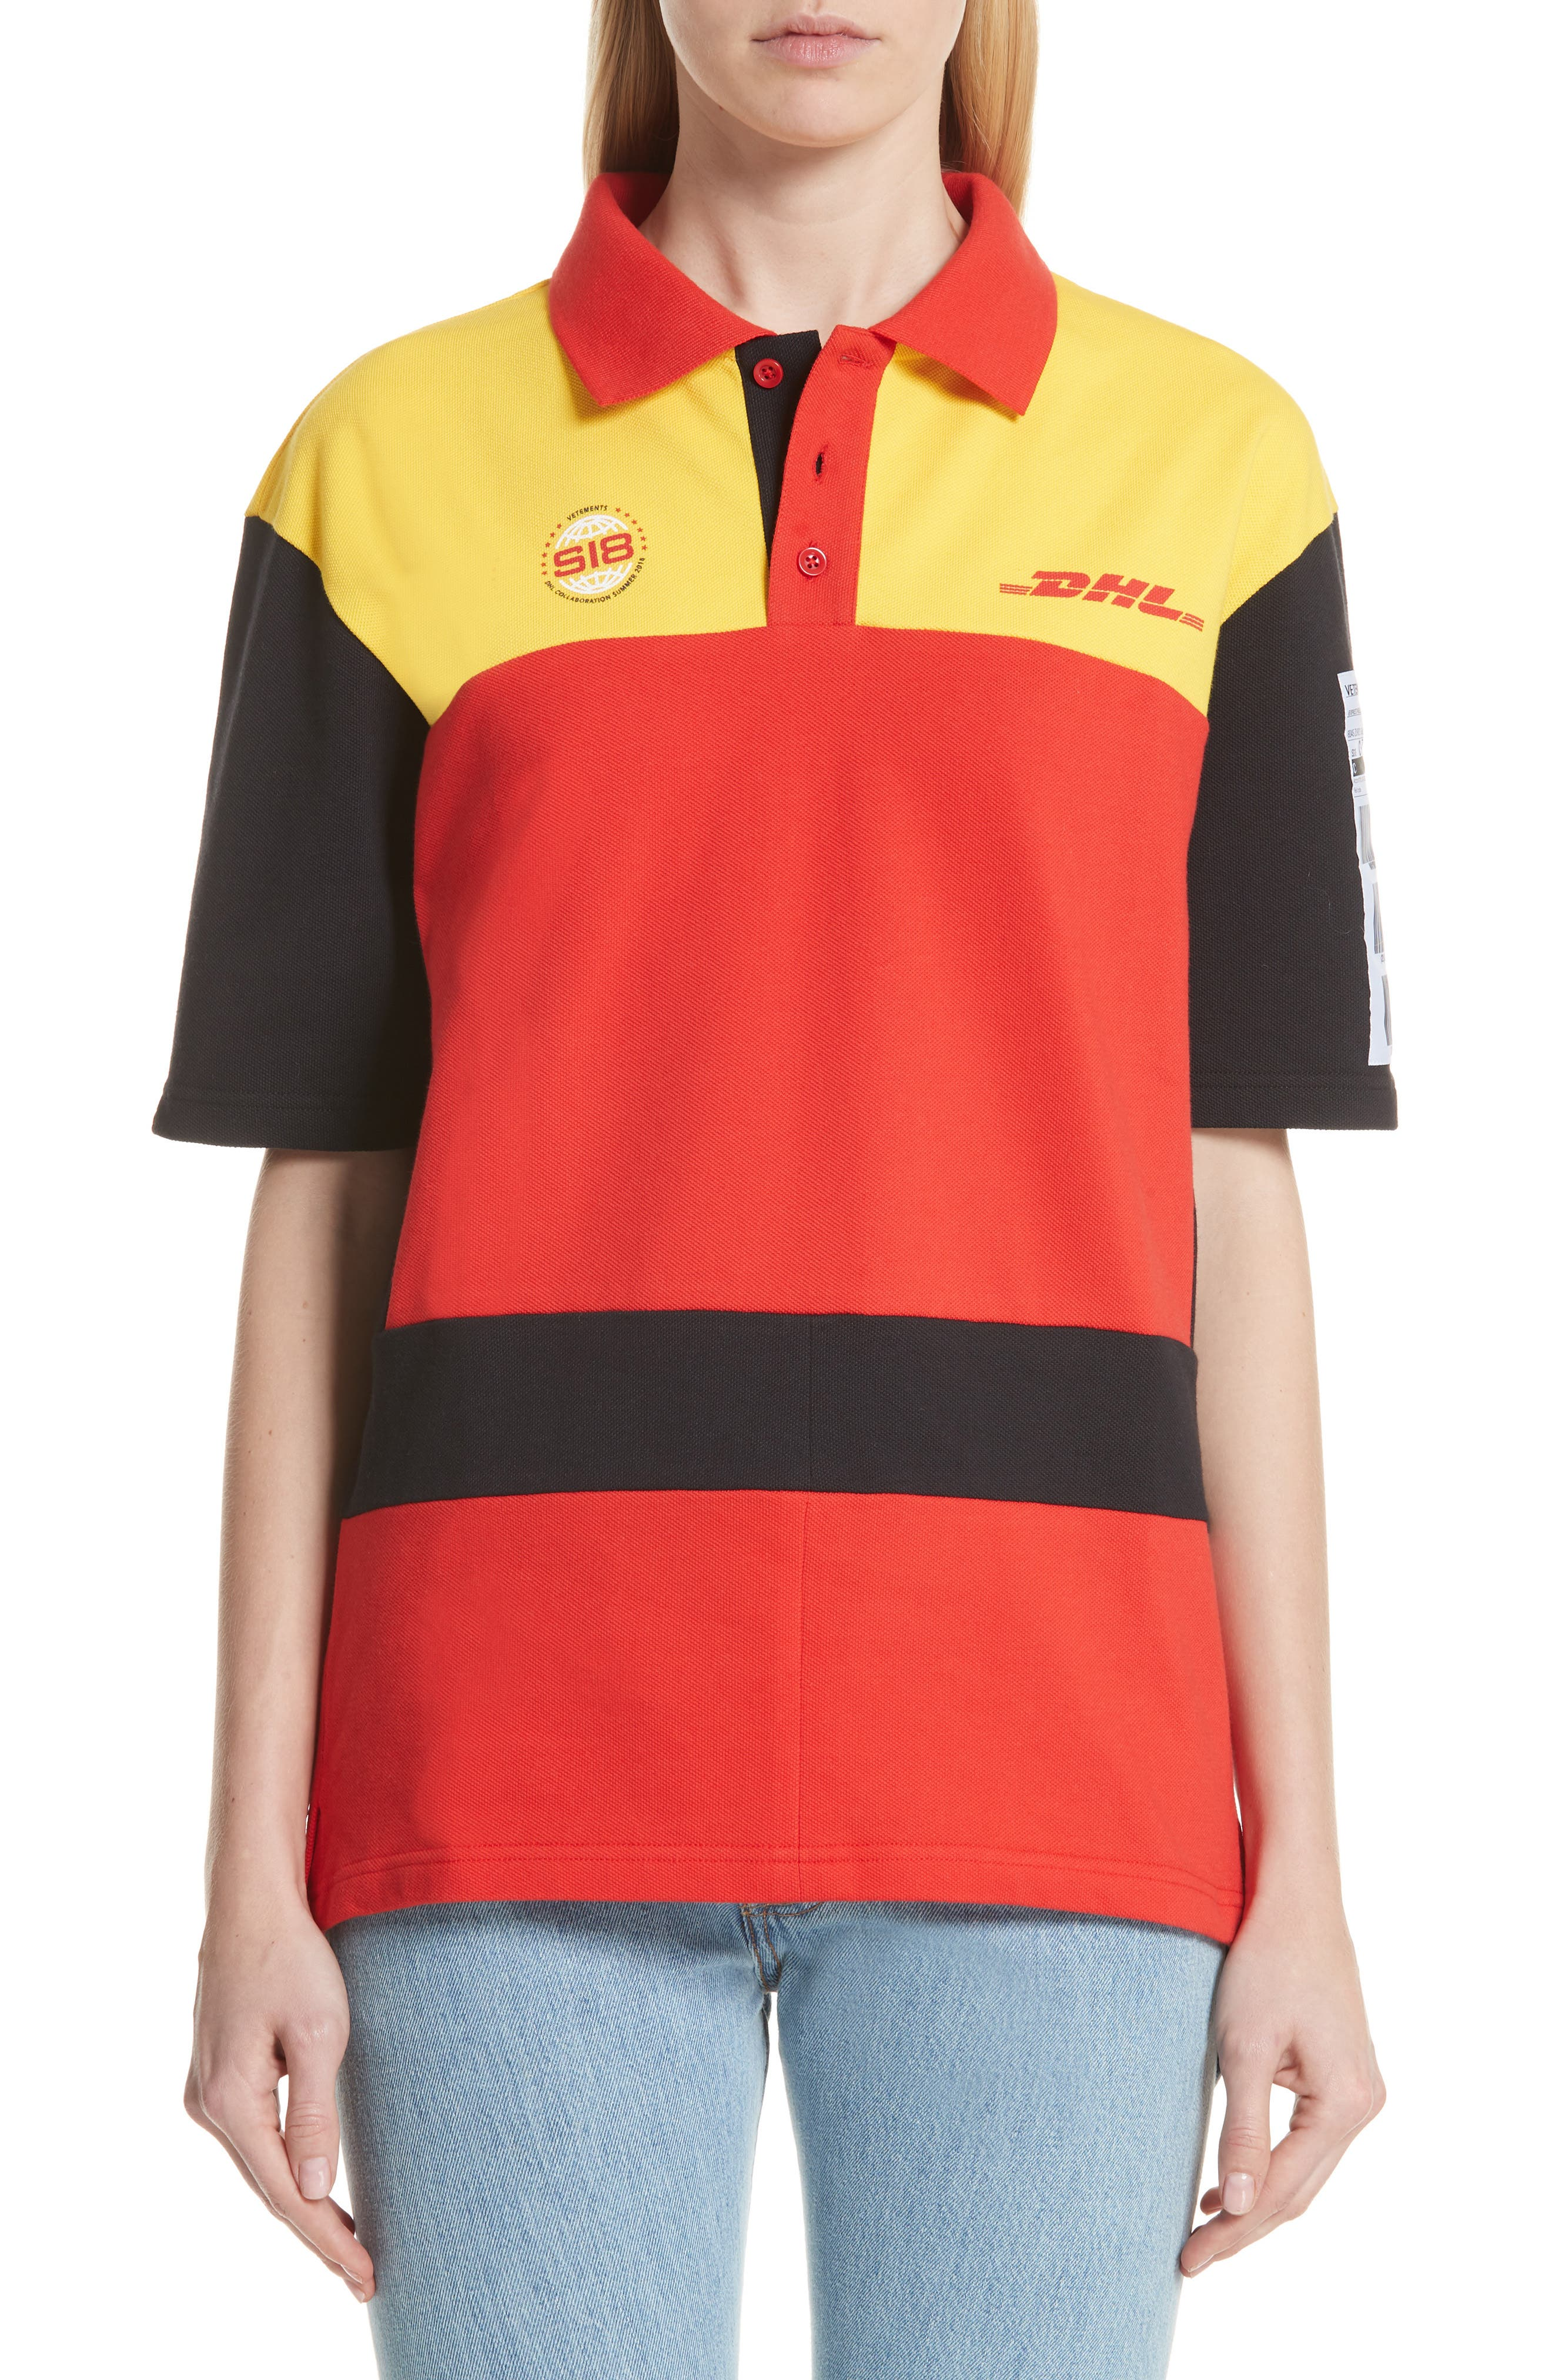 DHL Slim Fit Polo,                         Main,                         color, 700